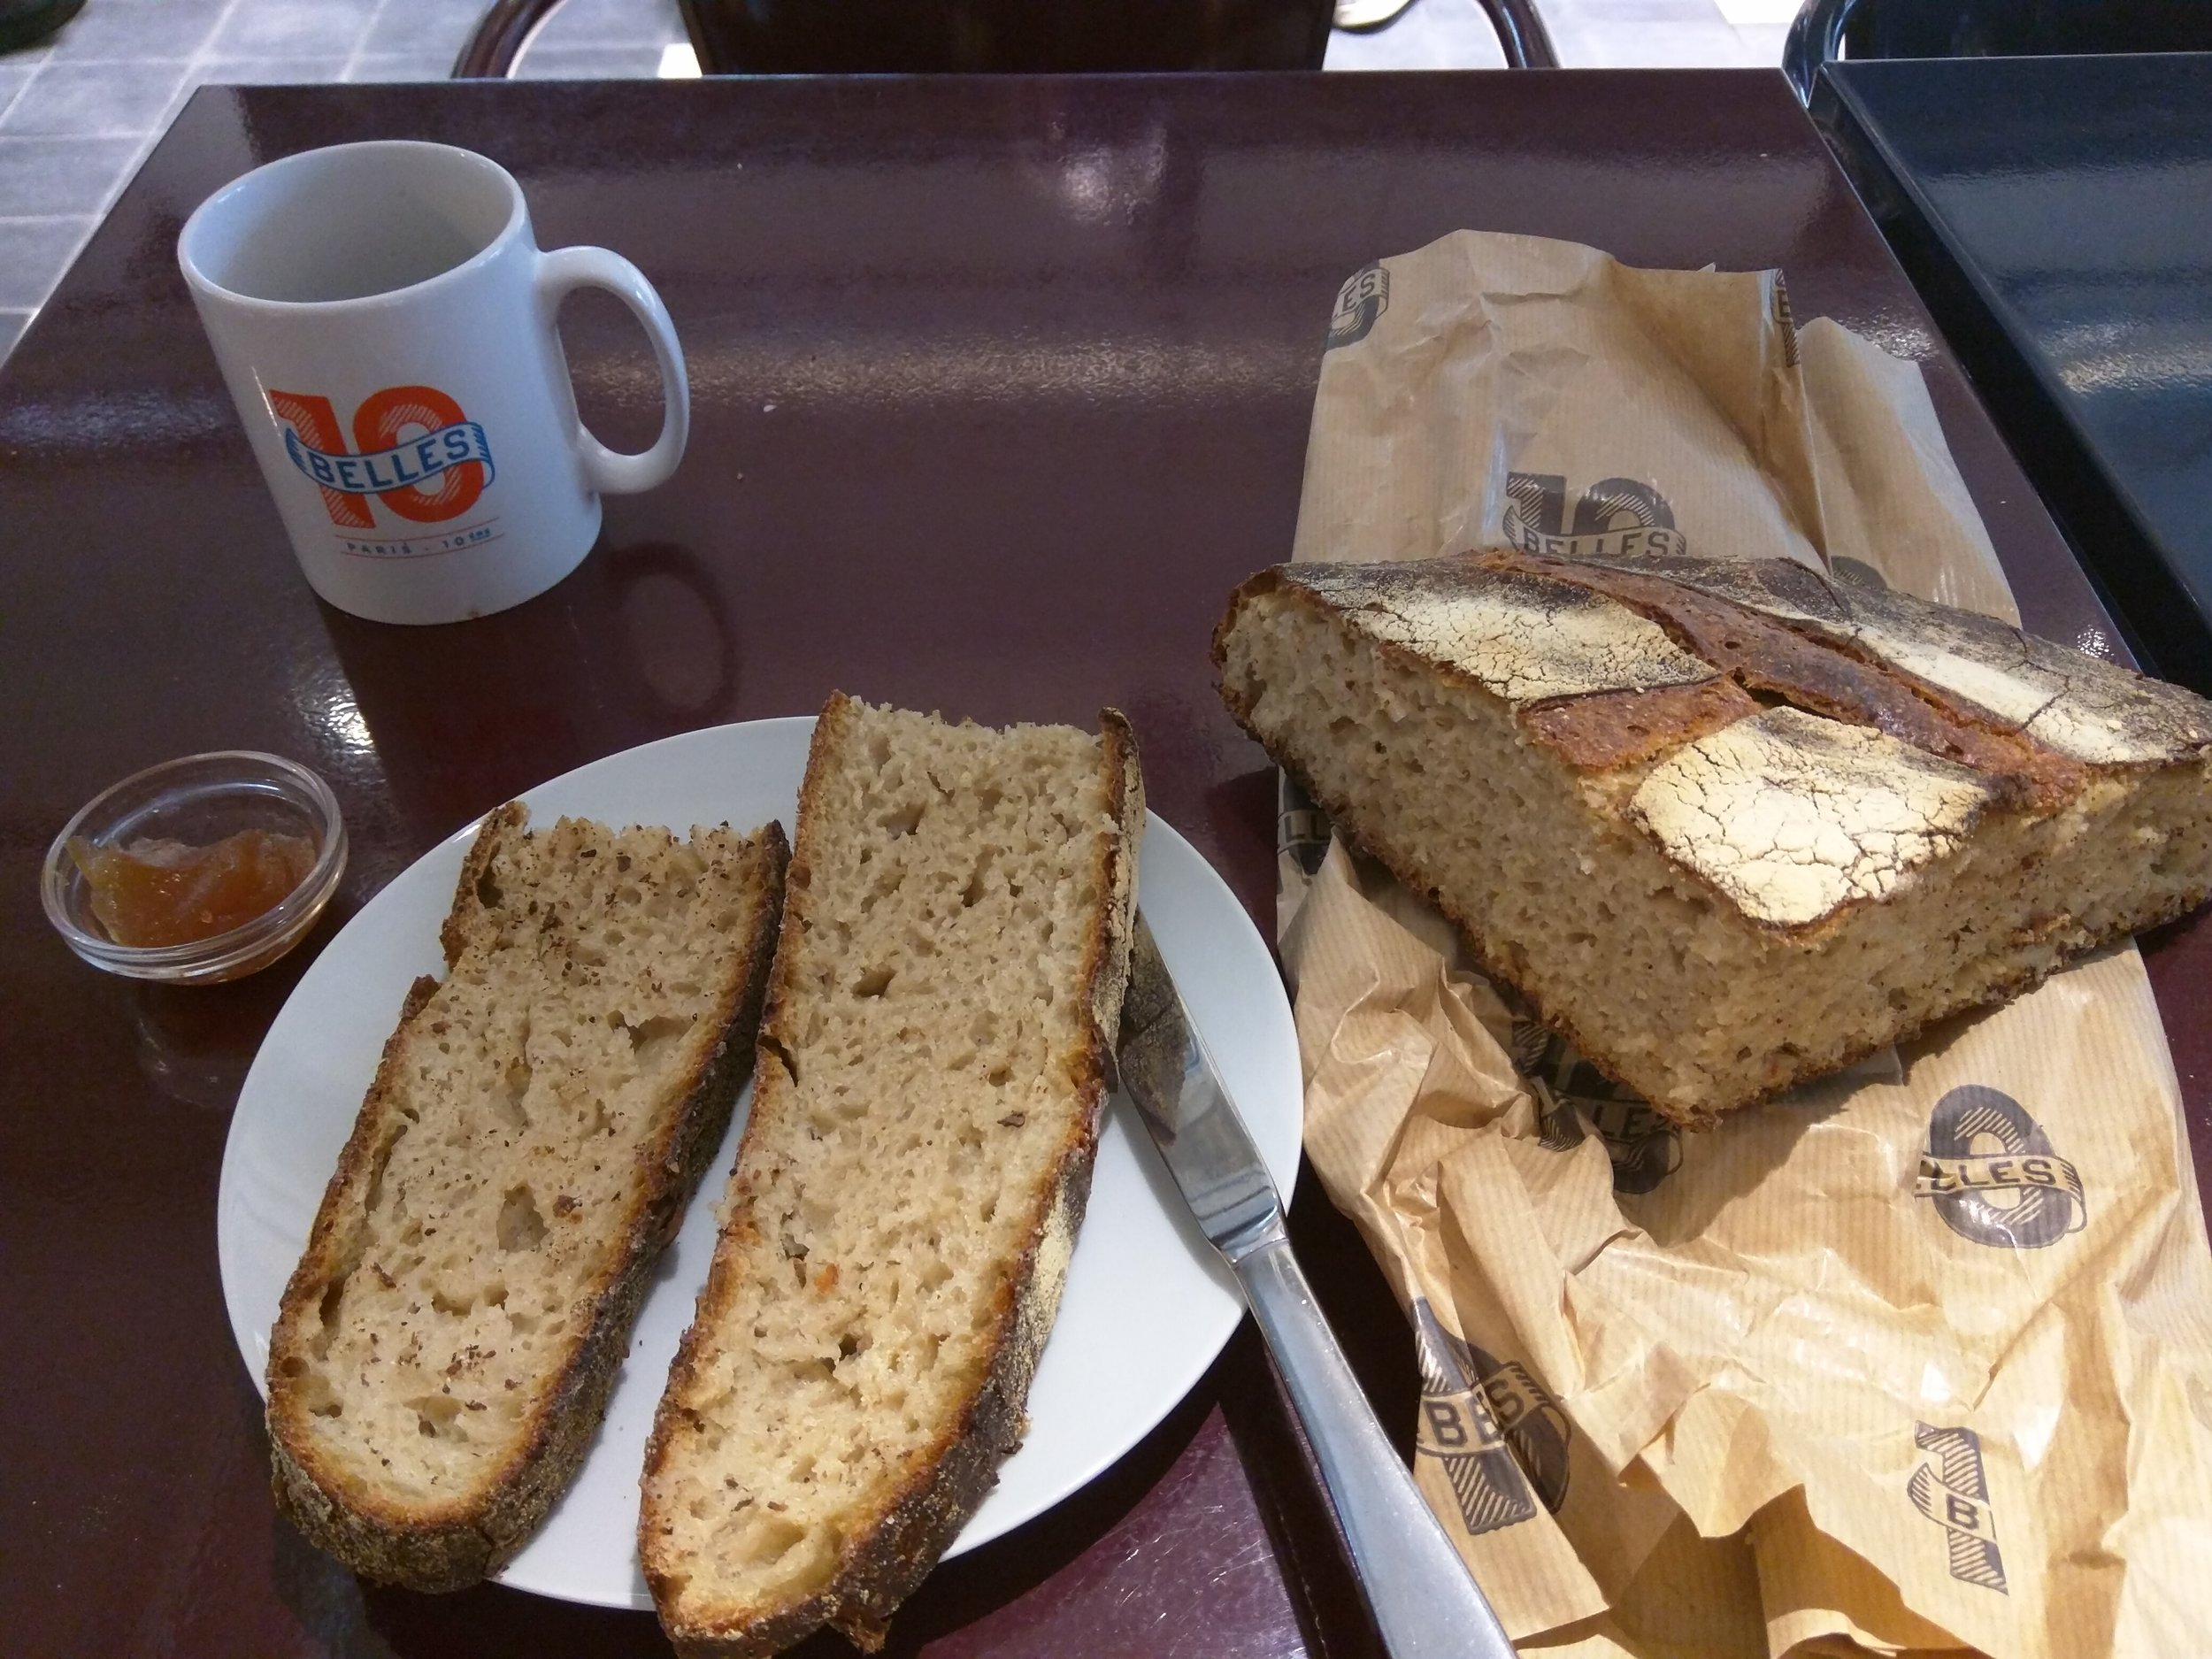 Sourly delighted at 10 belles, with and Ancien Bread and a Salvadorian coffee.